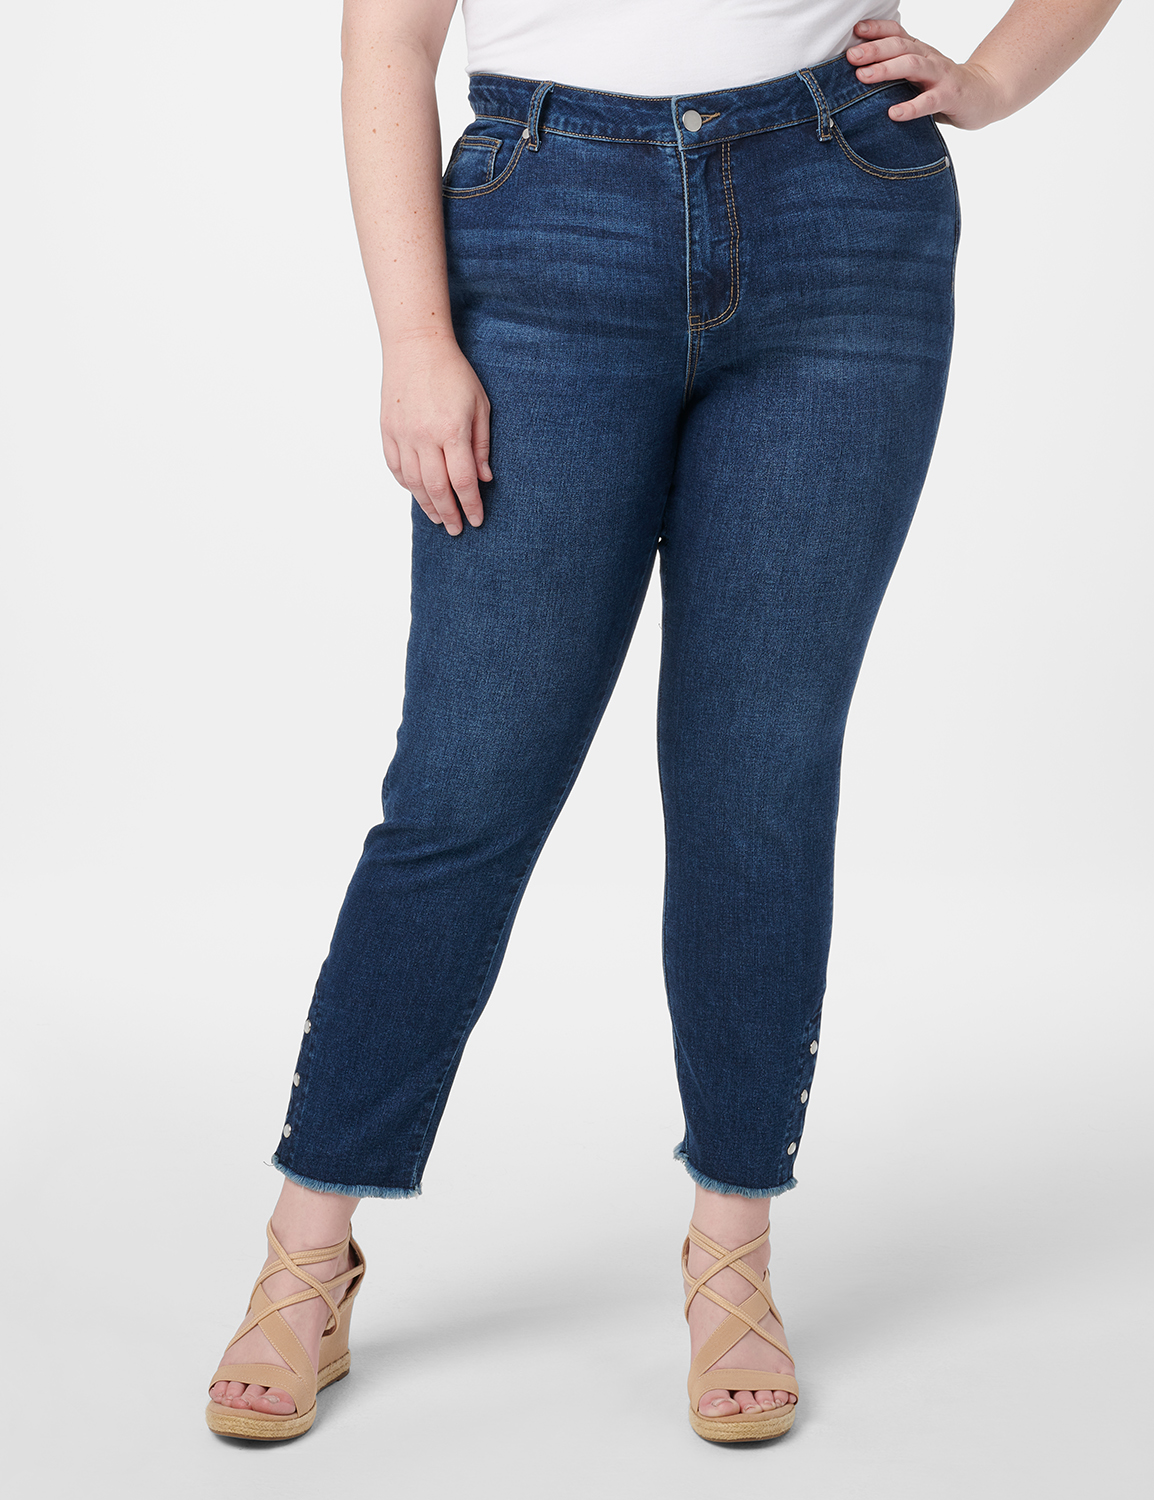 Westport Signature 5 Pocket Skinny Ankle Jean With Snap Button At Ankle - Plus - Dark Wash - Front